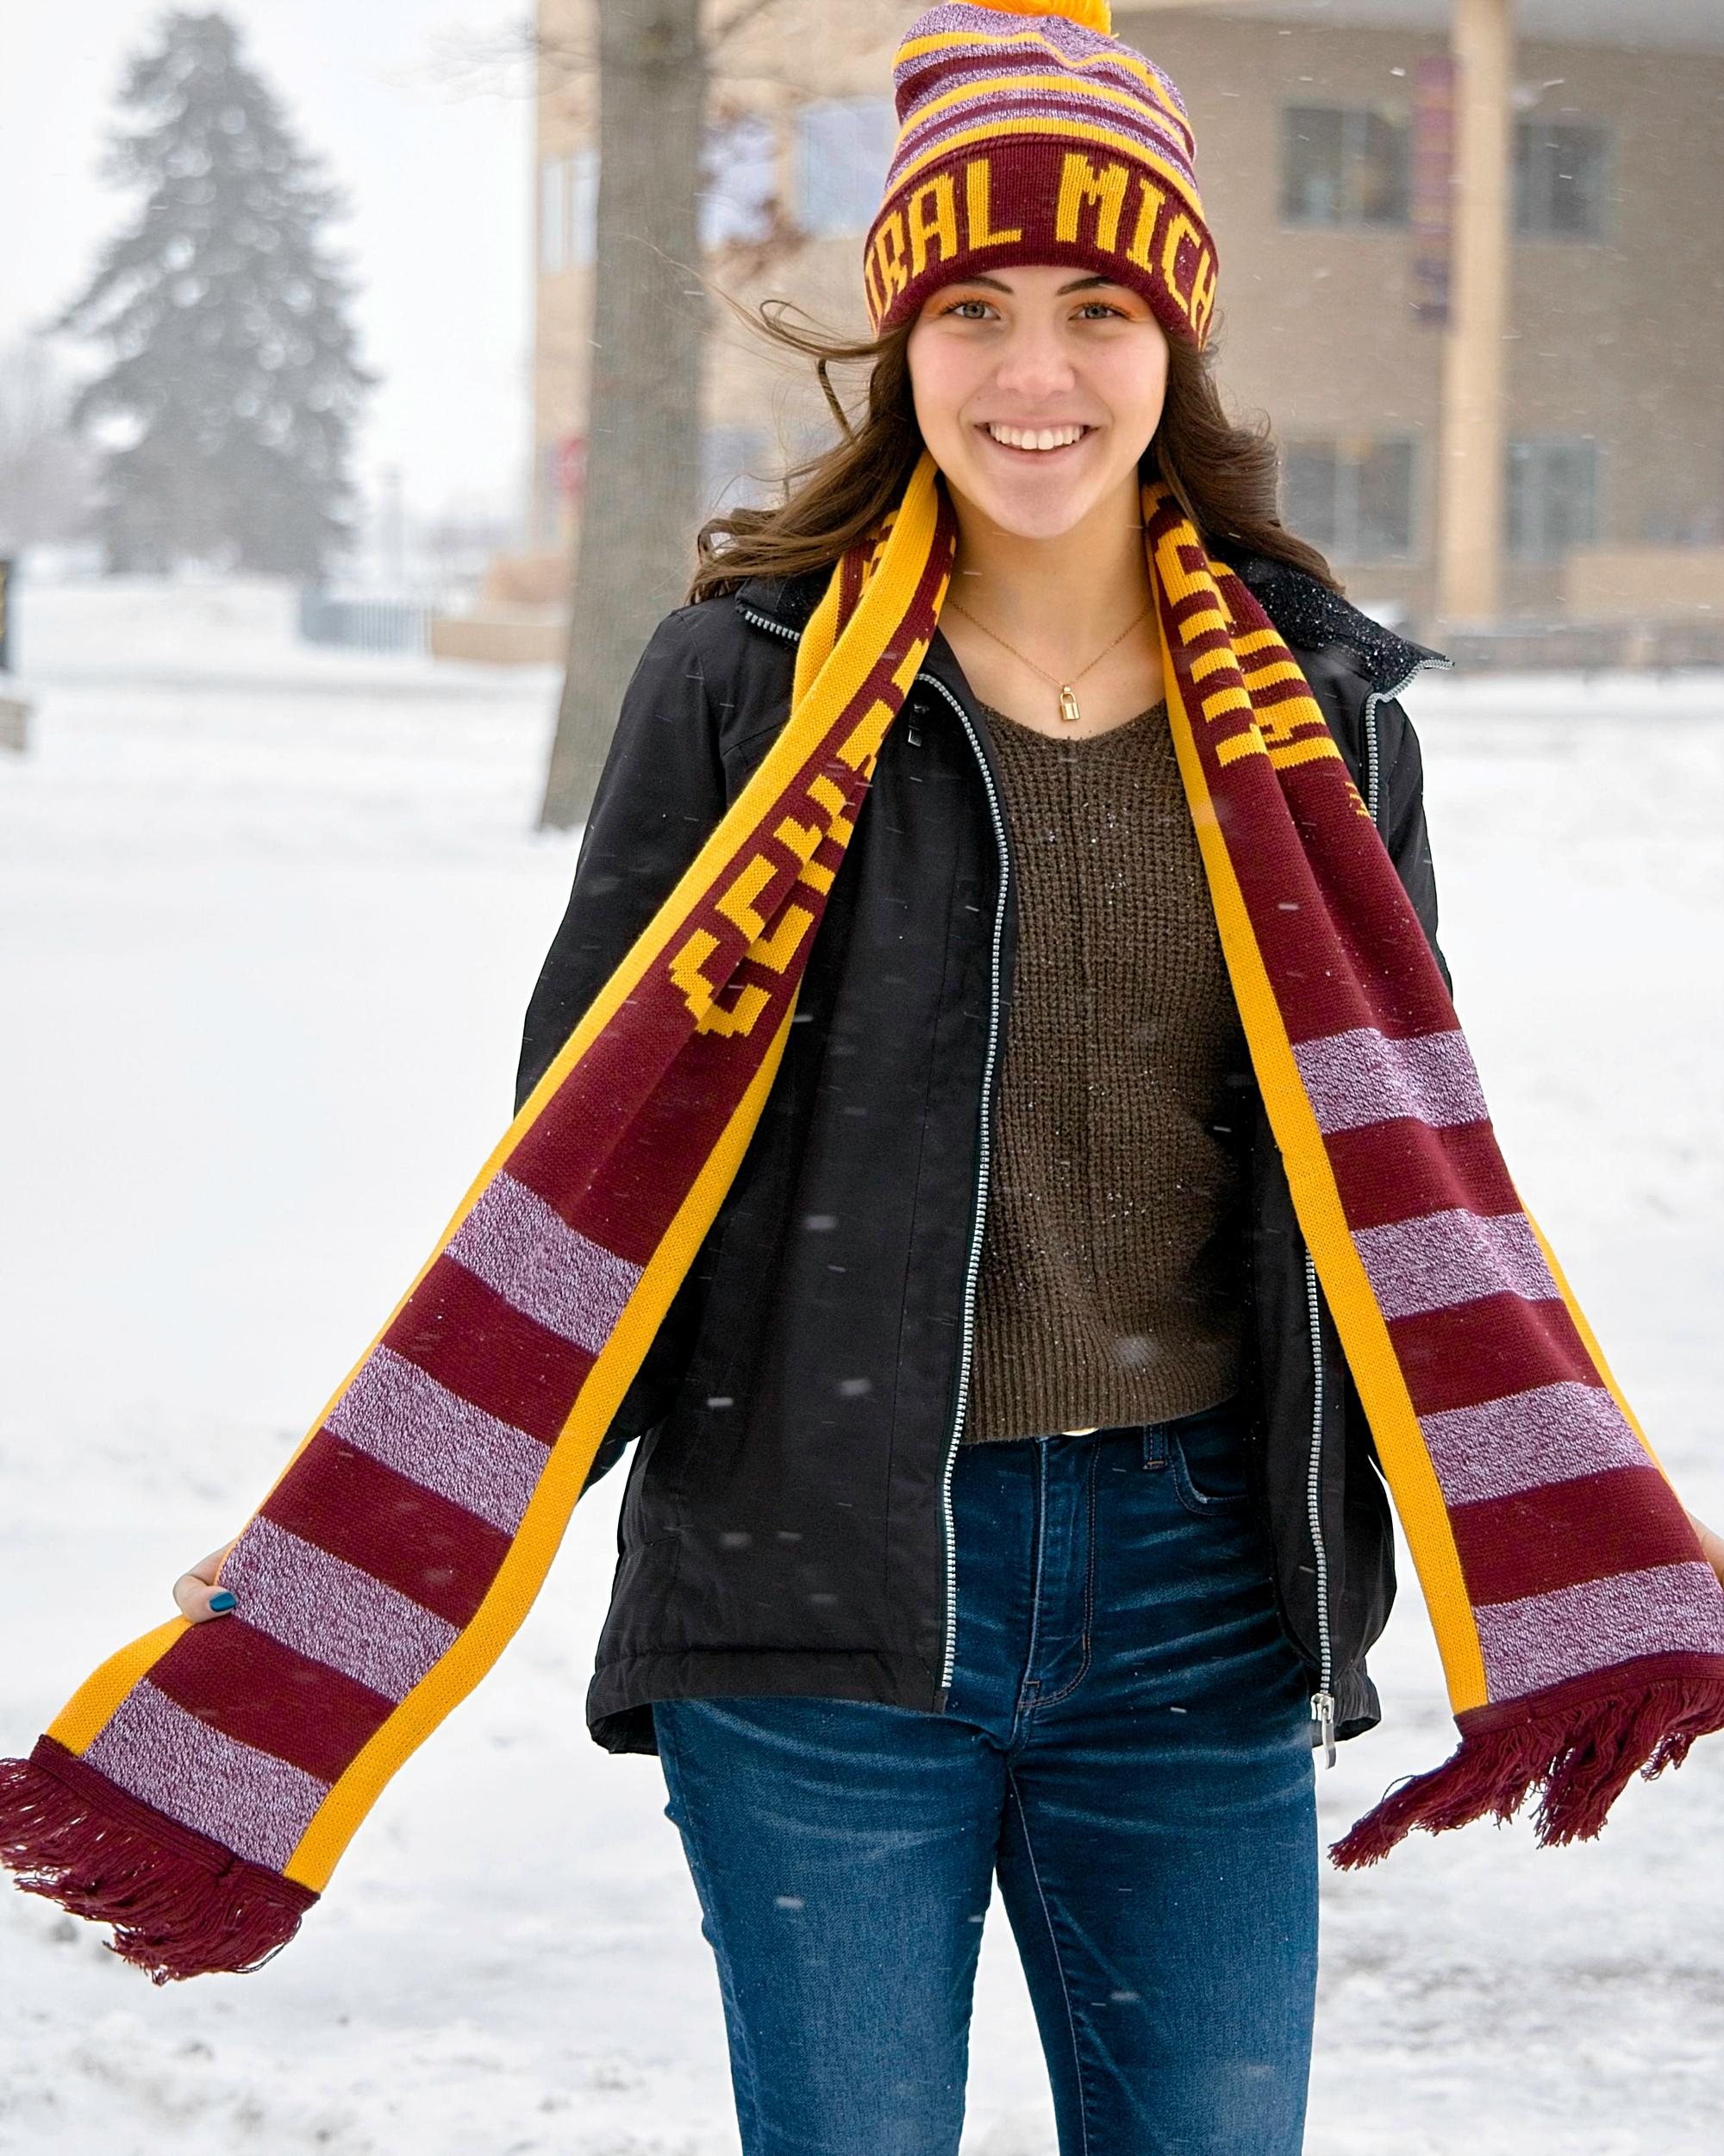 Central Michigan Gold And Heather Maroon Scarf (SKU 5029980543)